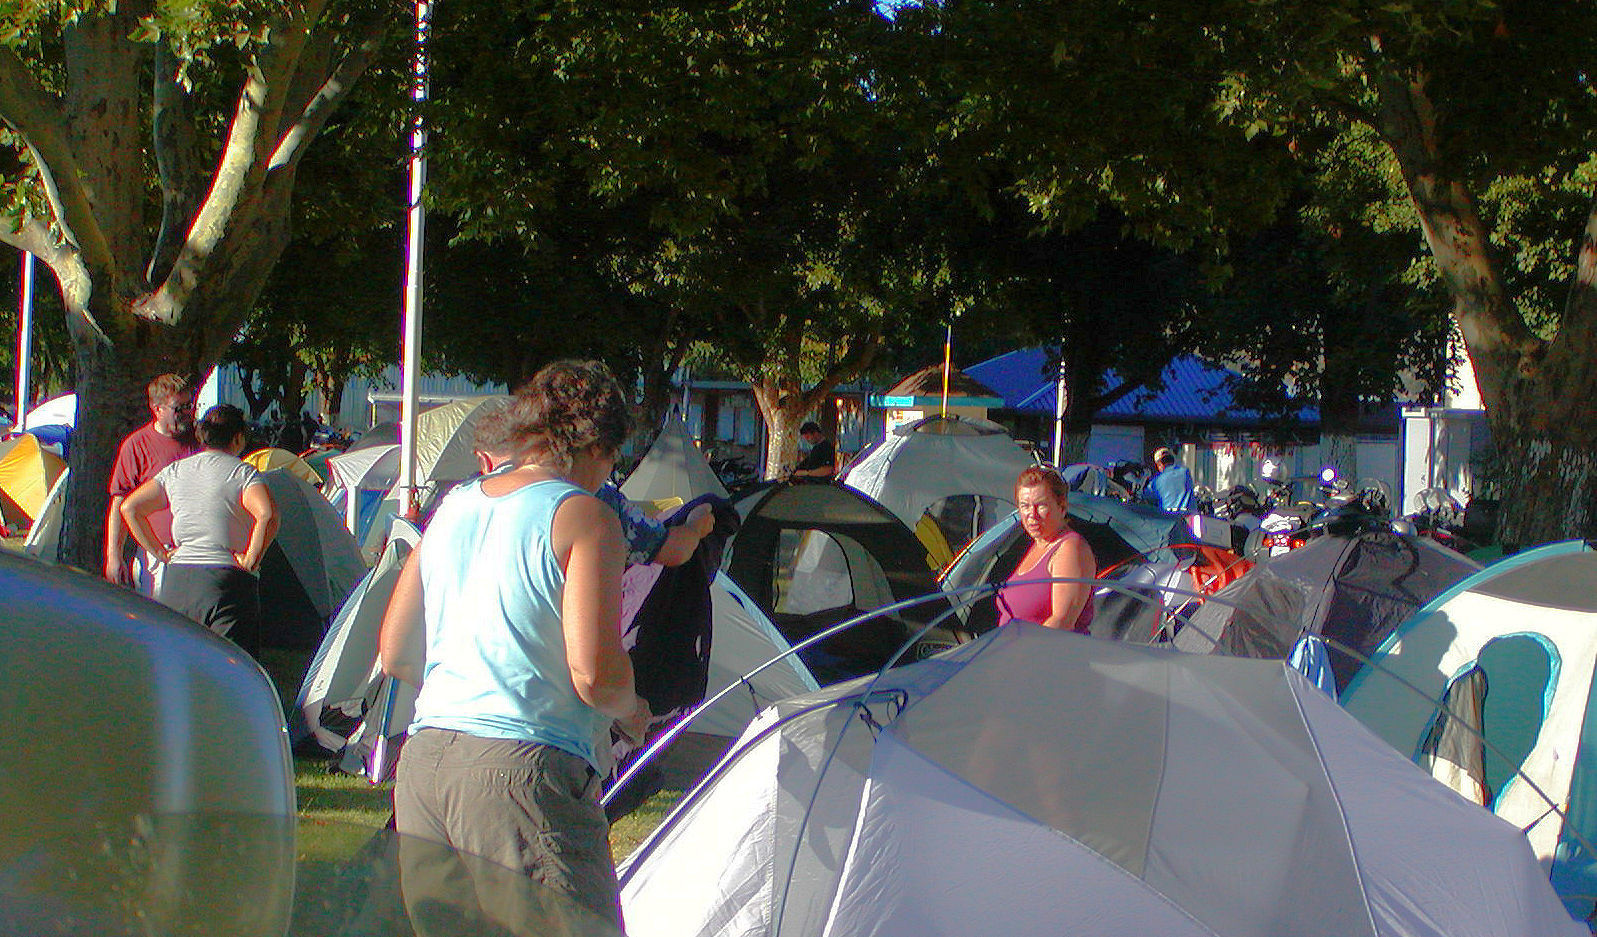 People, tents, trees